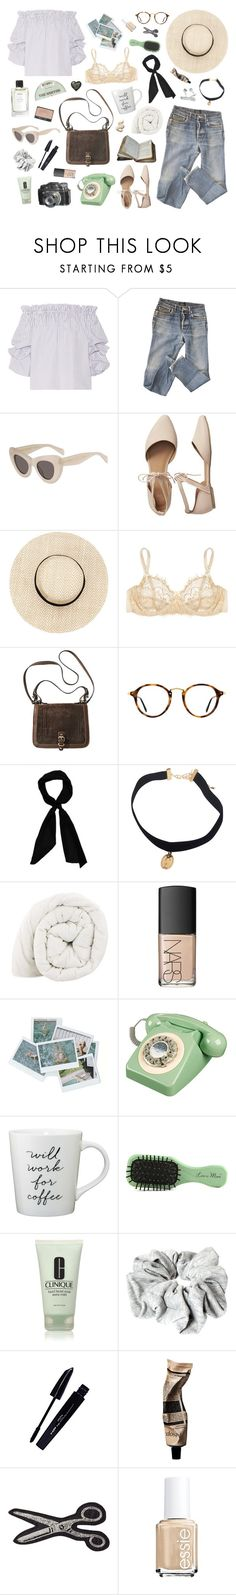 """""""I LIKE THE WAY YOU SOUND IN THE MORNING"""" by etoilesdanse ❤ liked on Polyvore featuring Caroline Constas, A.P.C., Gap, Mimi Holliday by Damaris, Ray-Ban, donni charm, NARS Cosmetics, Wild & Wolf, Less is More and Clinique"""